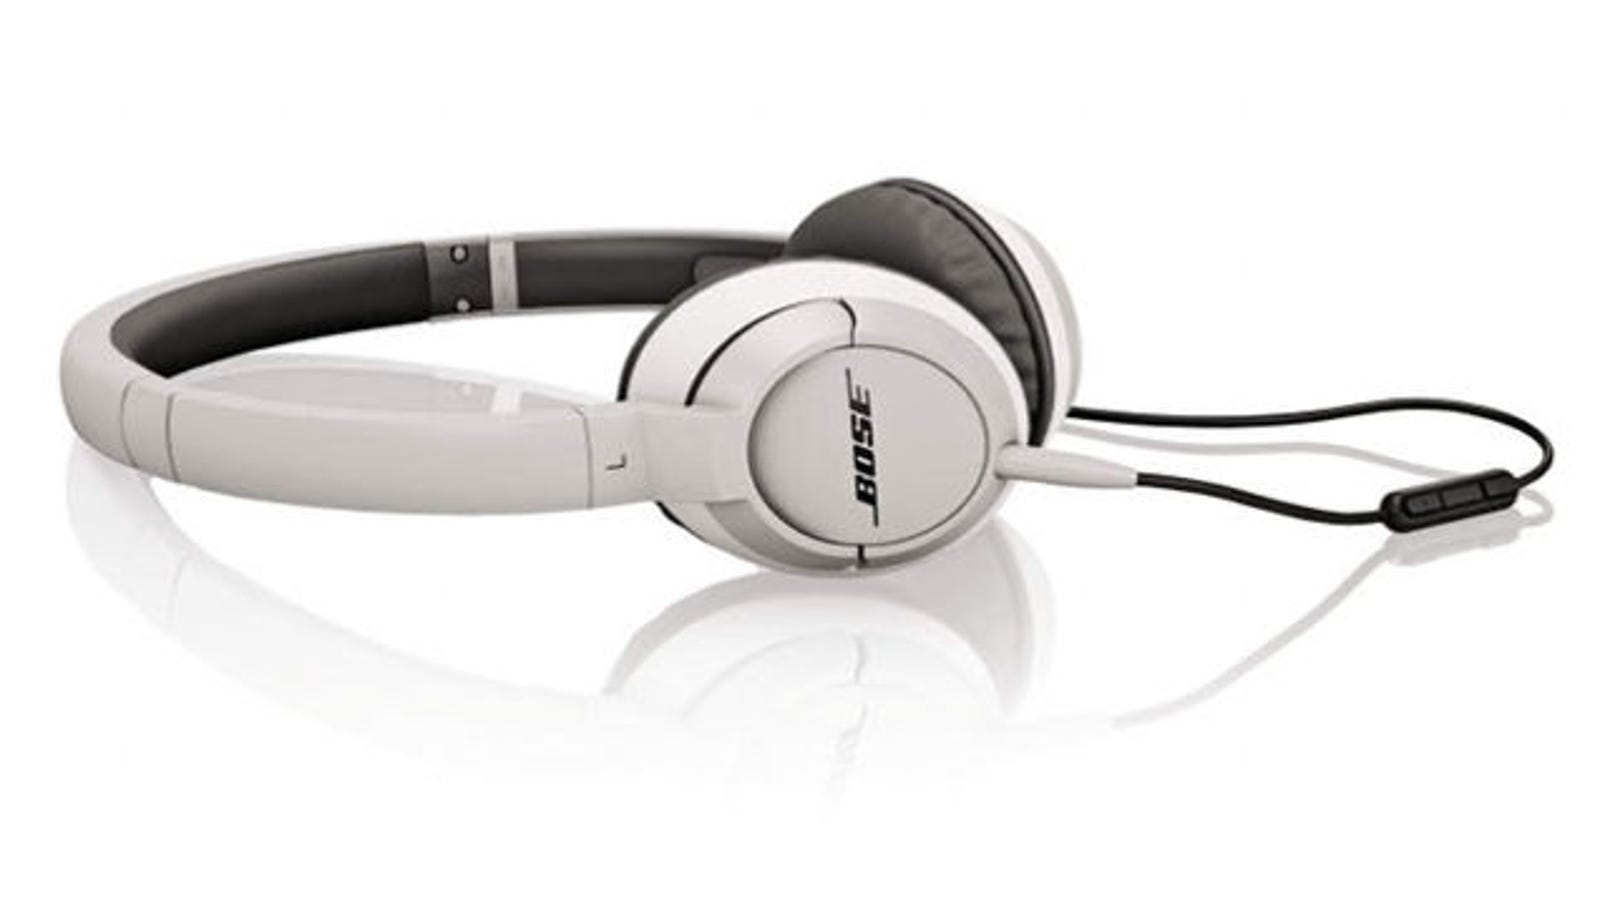 skullcandy earbuds replacement tips small - Report: Bose Is Going To Return To The Apple Store